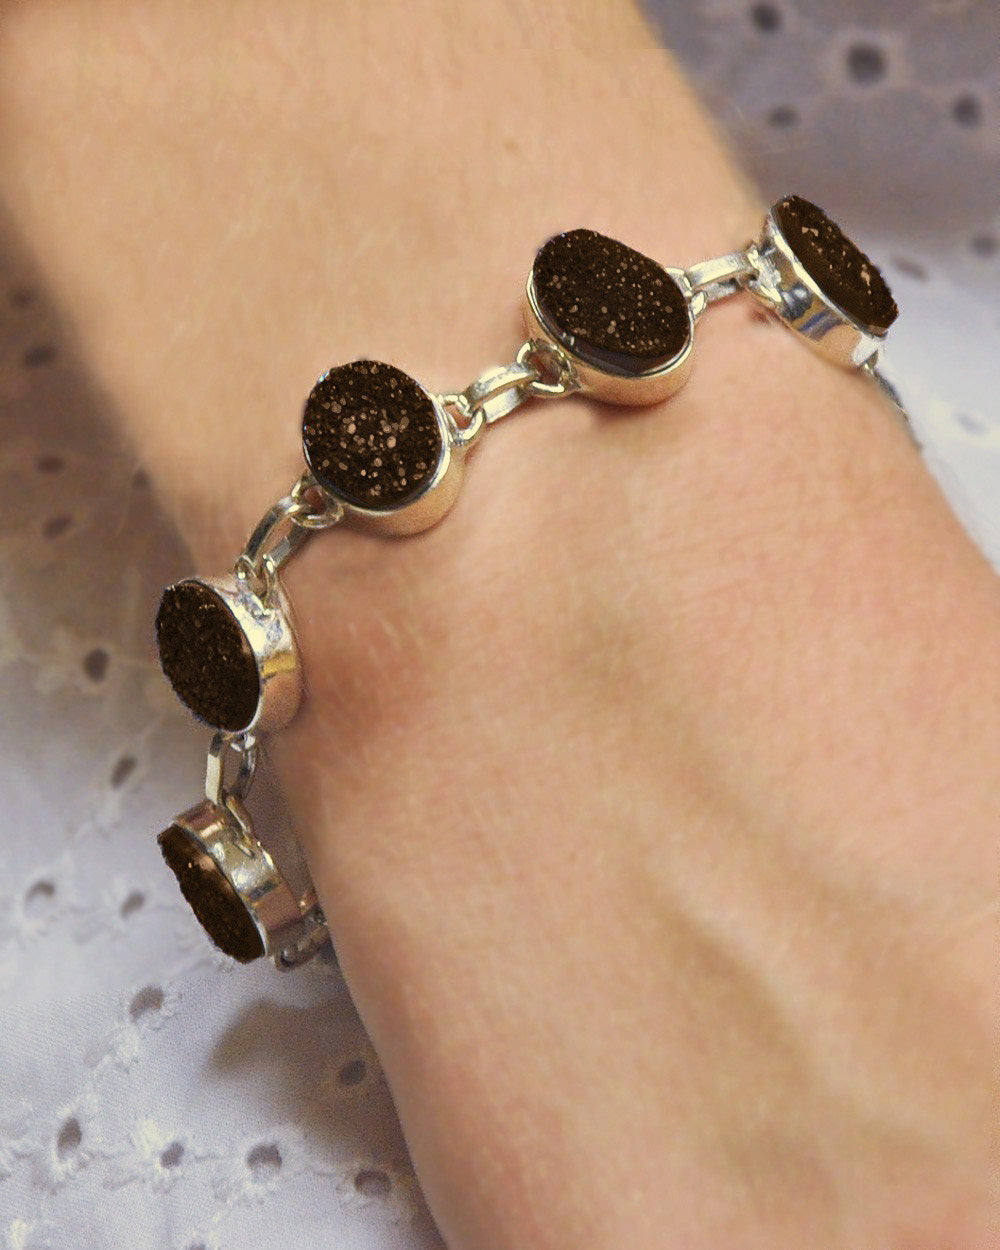 Night Tides Black Druzy Stones Bracelet in 925 Sterling Silver